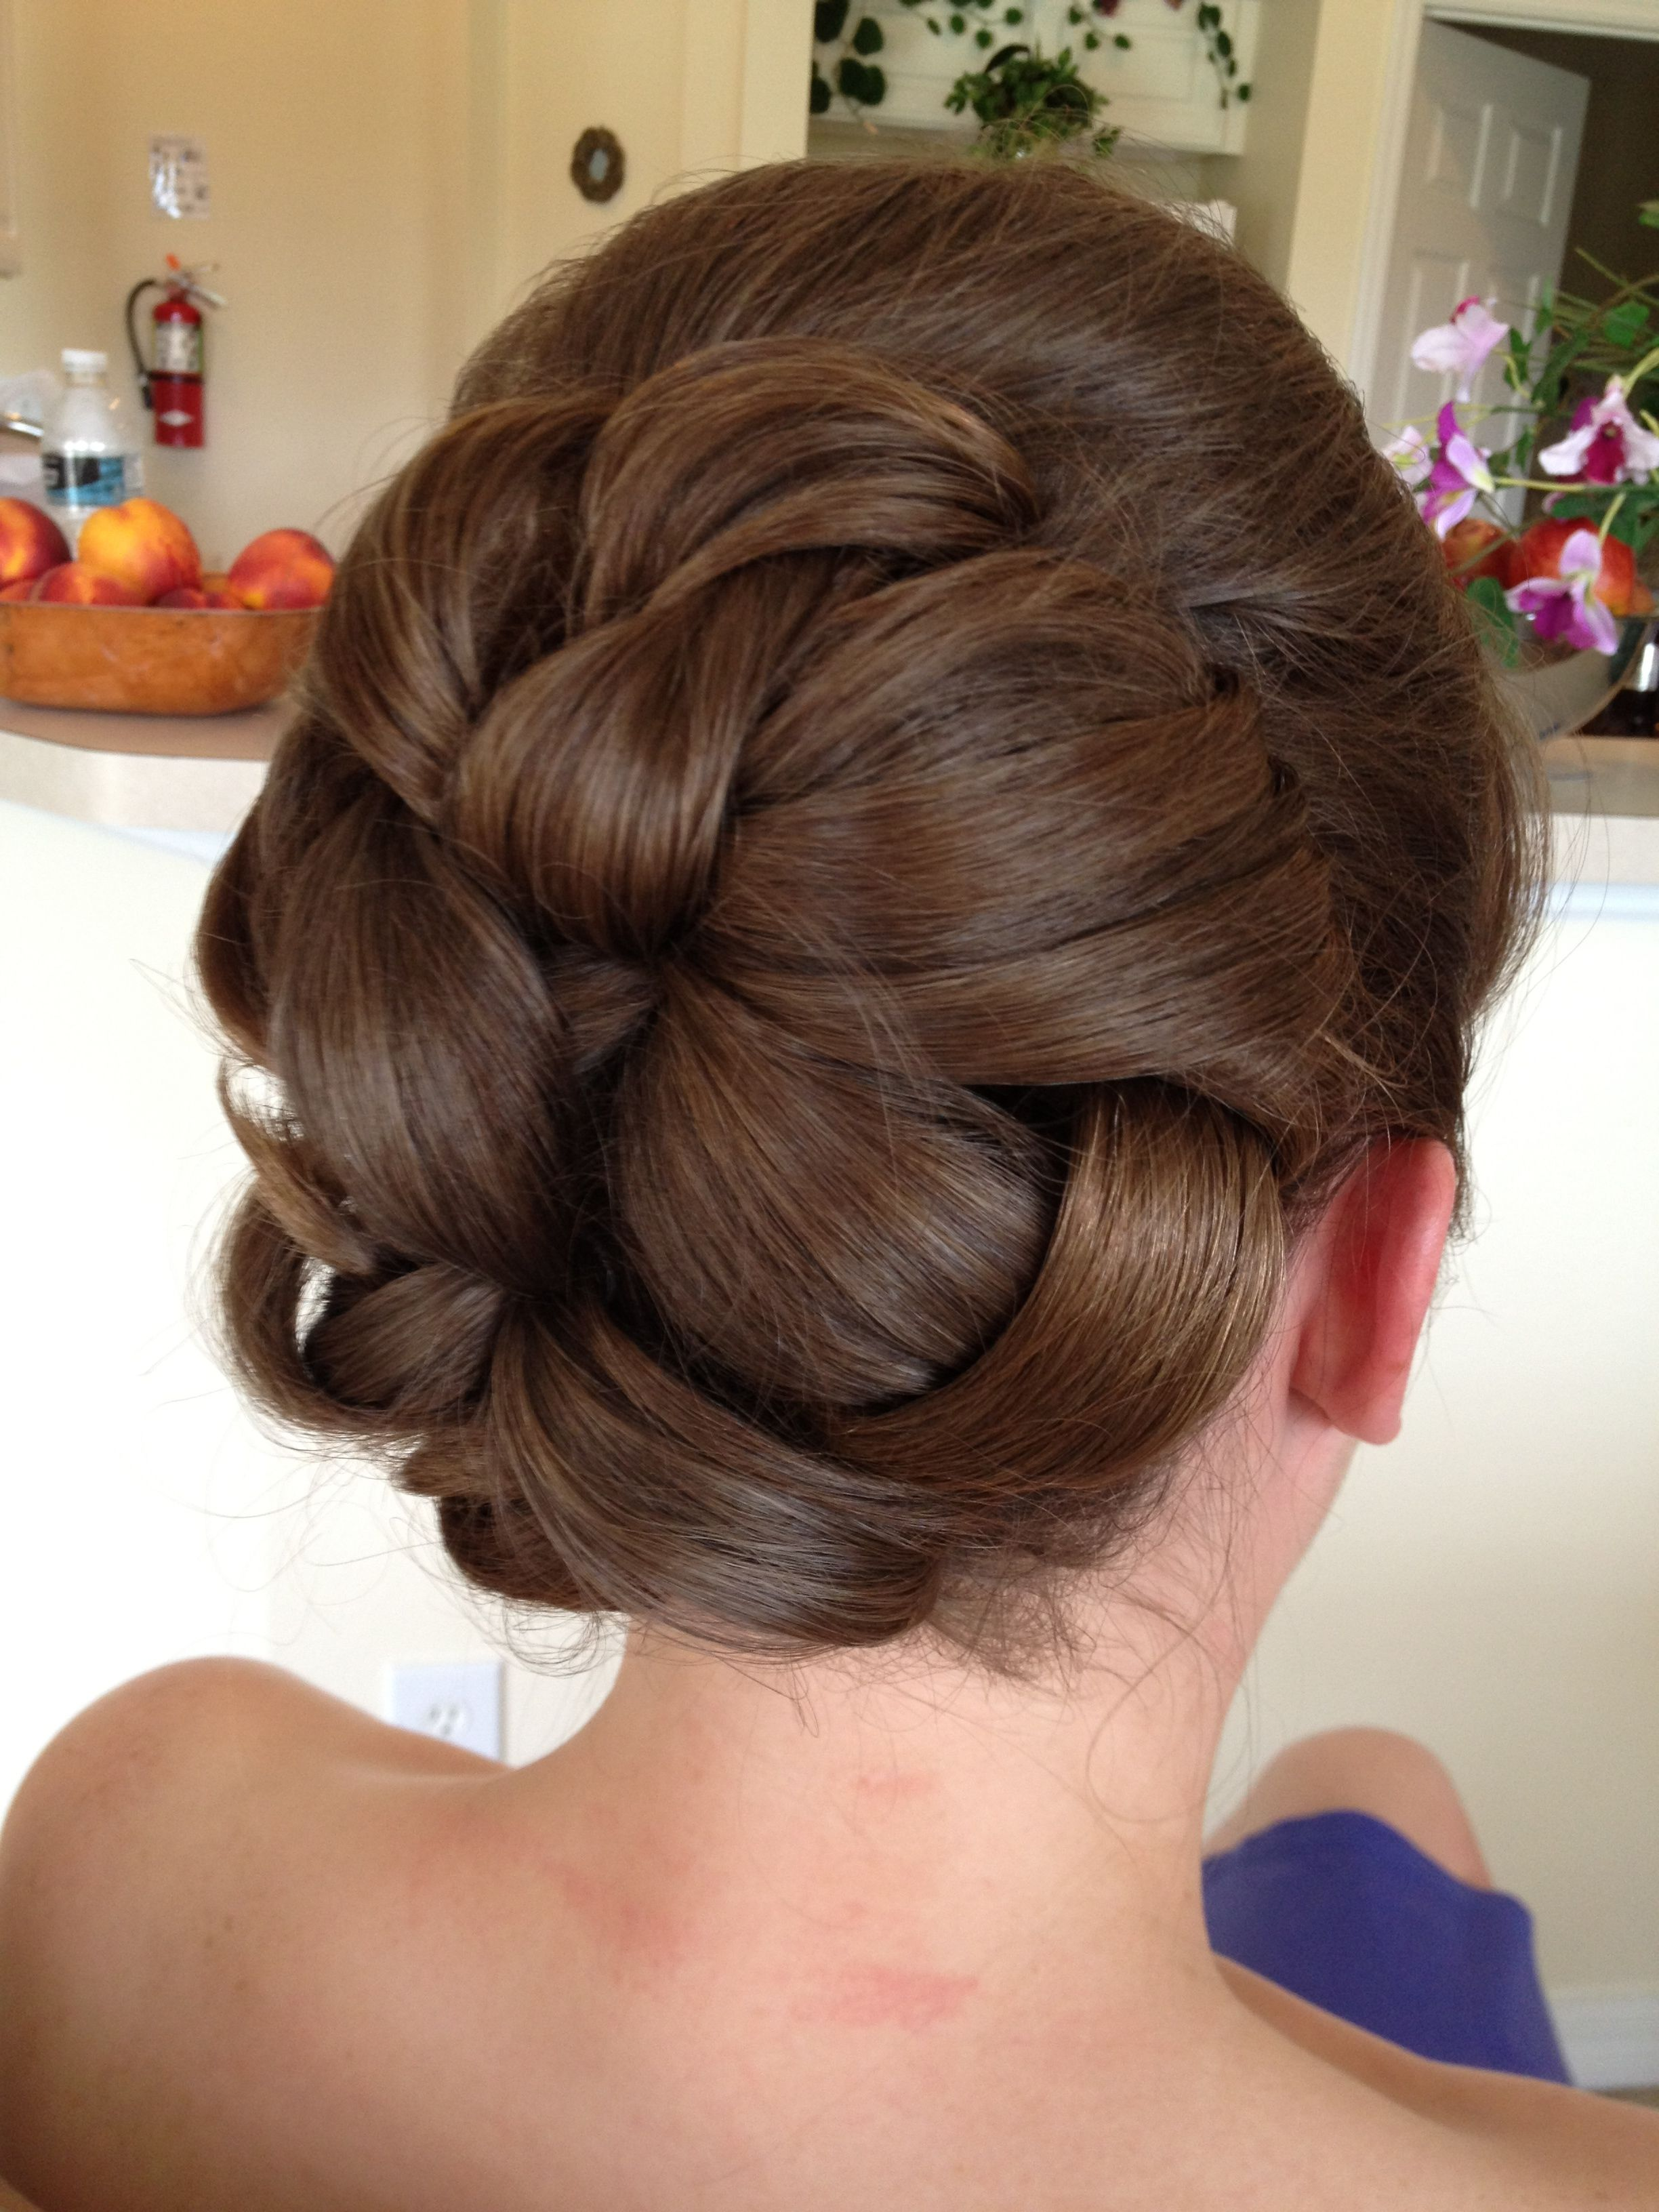 wedding hair - large barrel style curls in the back with a